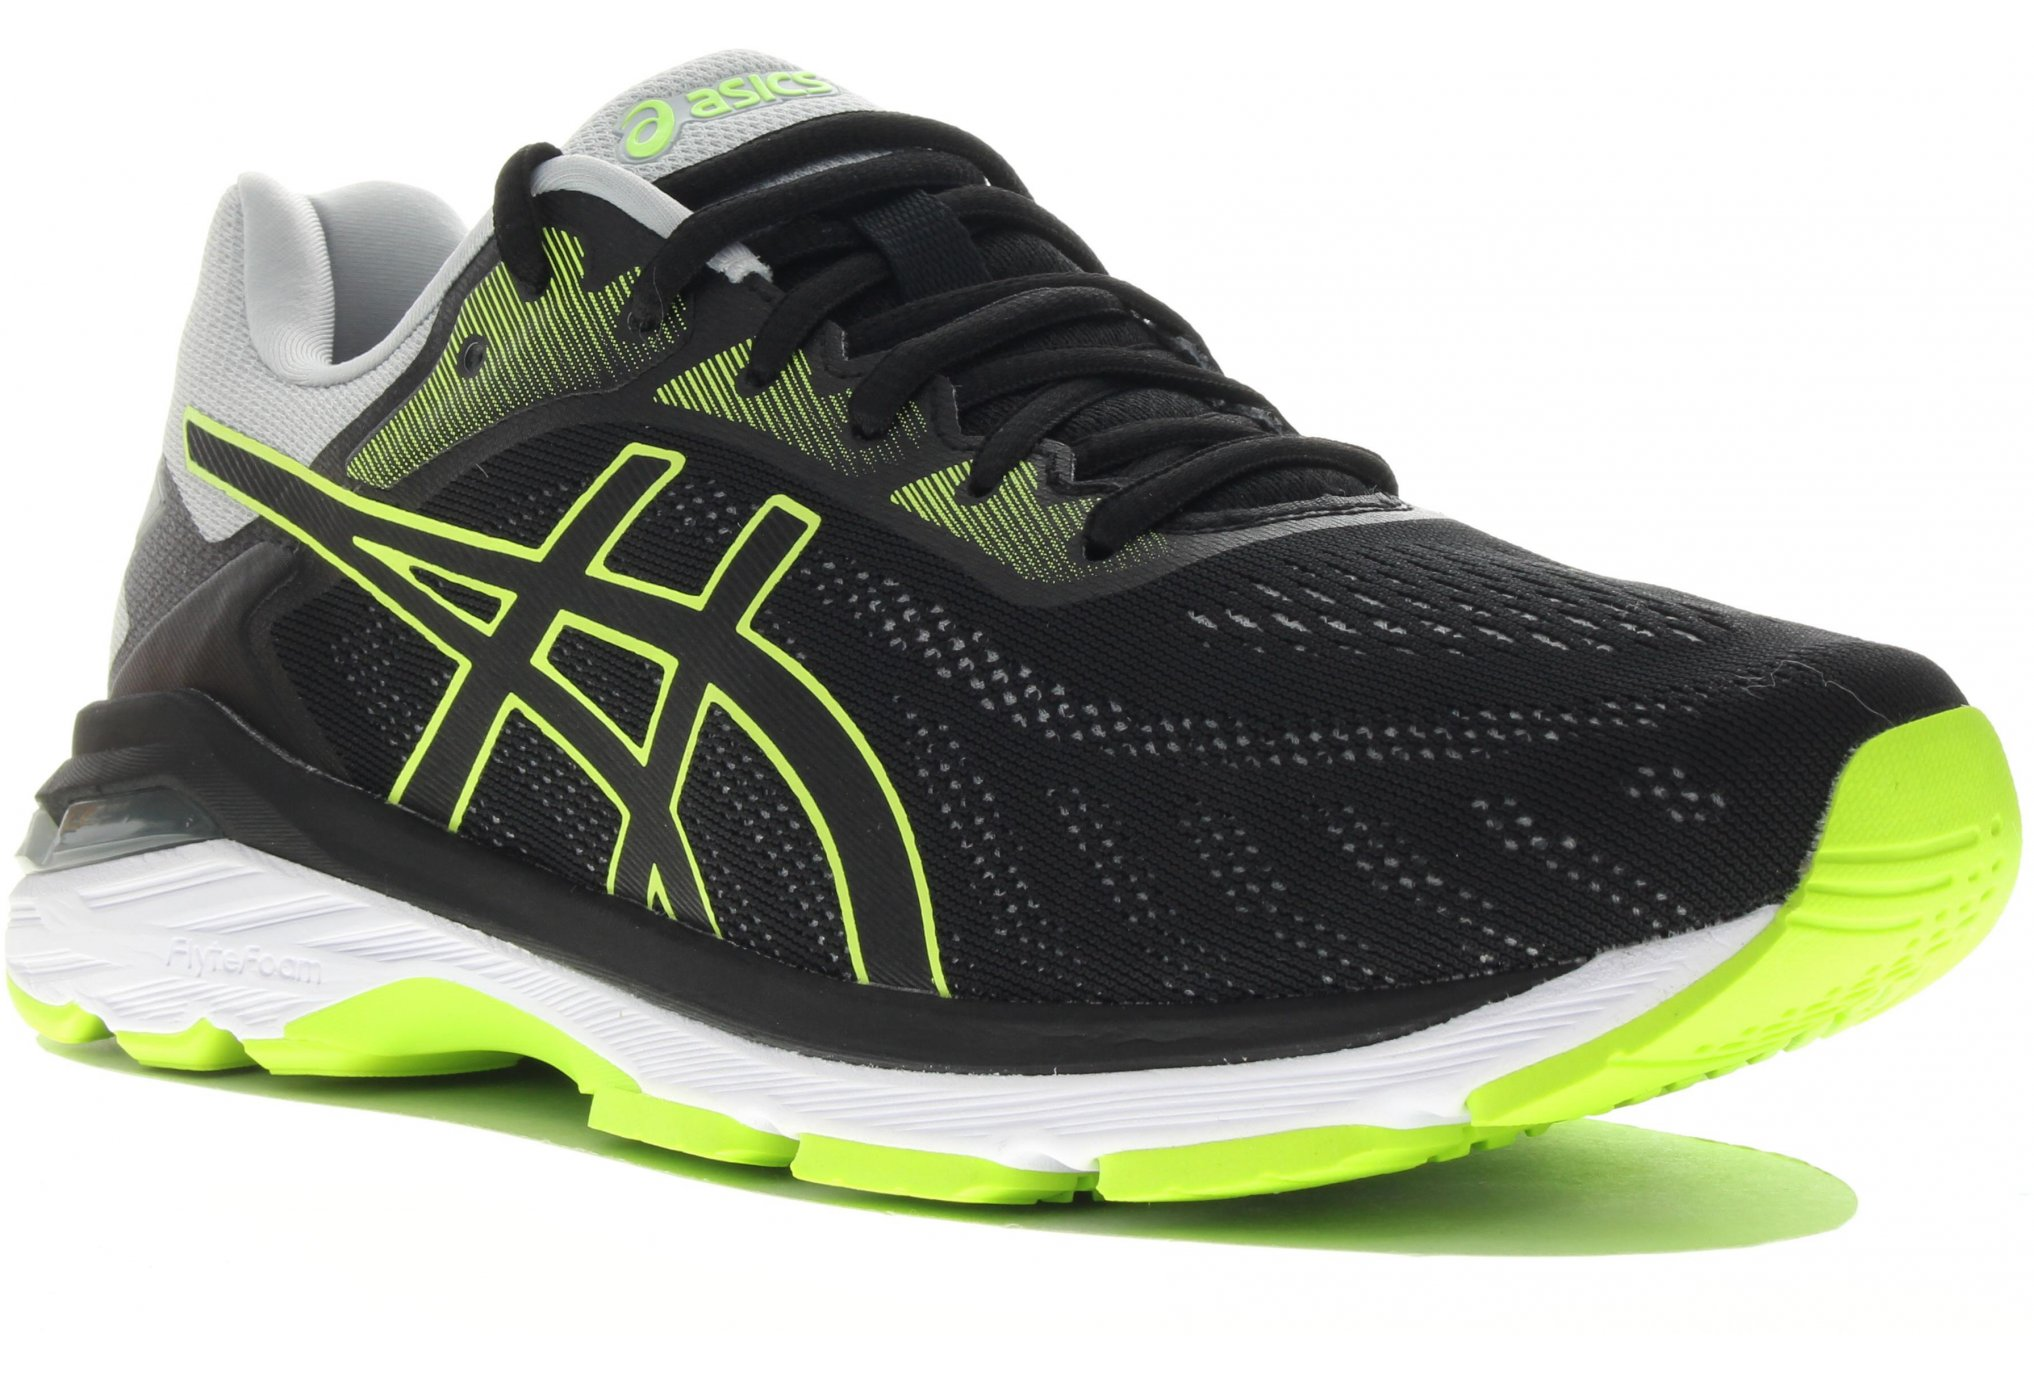 cheap for discount 0c783 3389b Asics Gel Kayano 24 M homme Jaune or pas cher